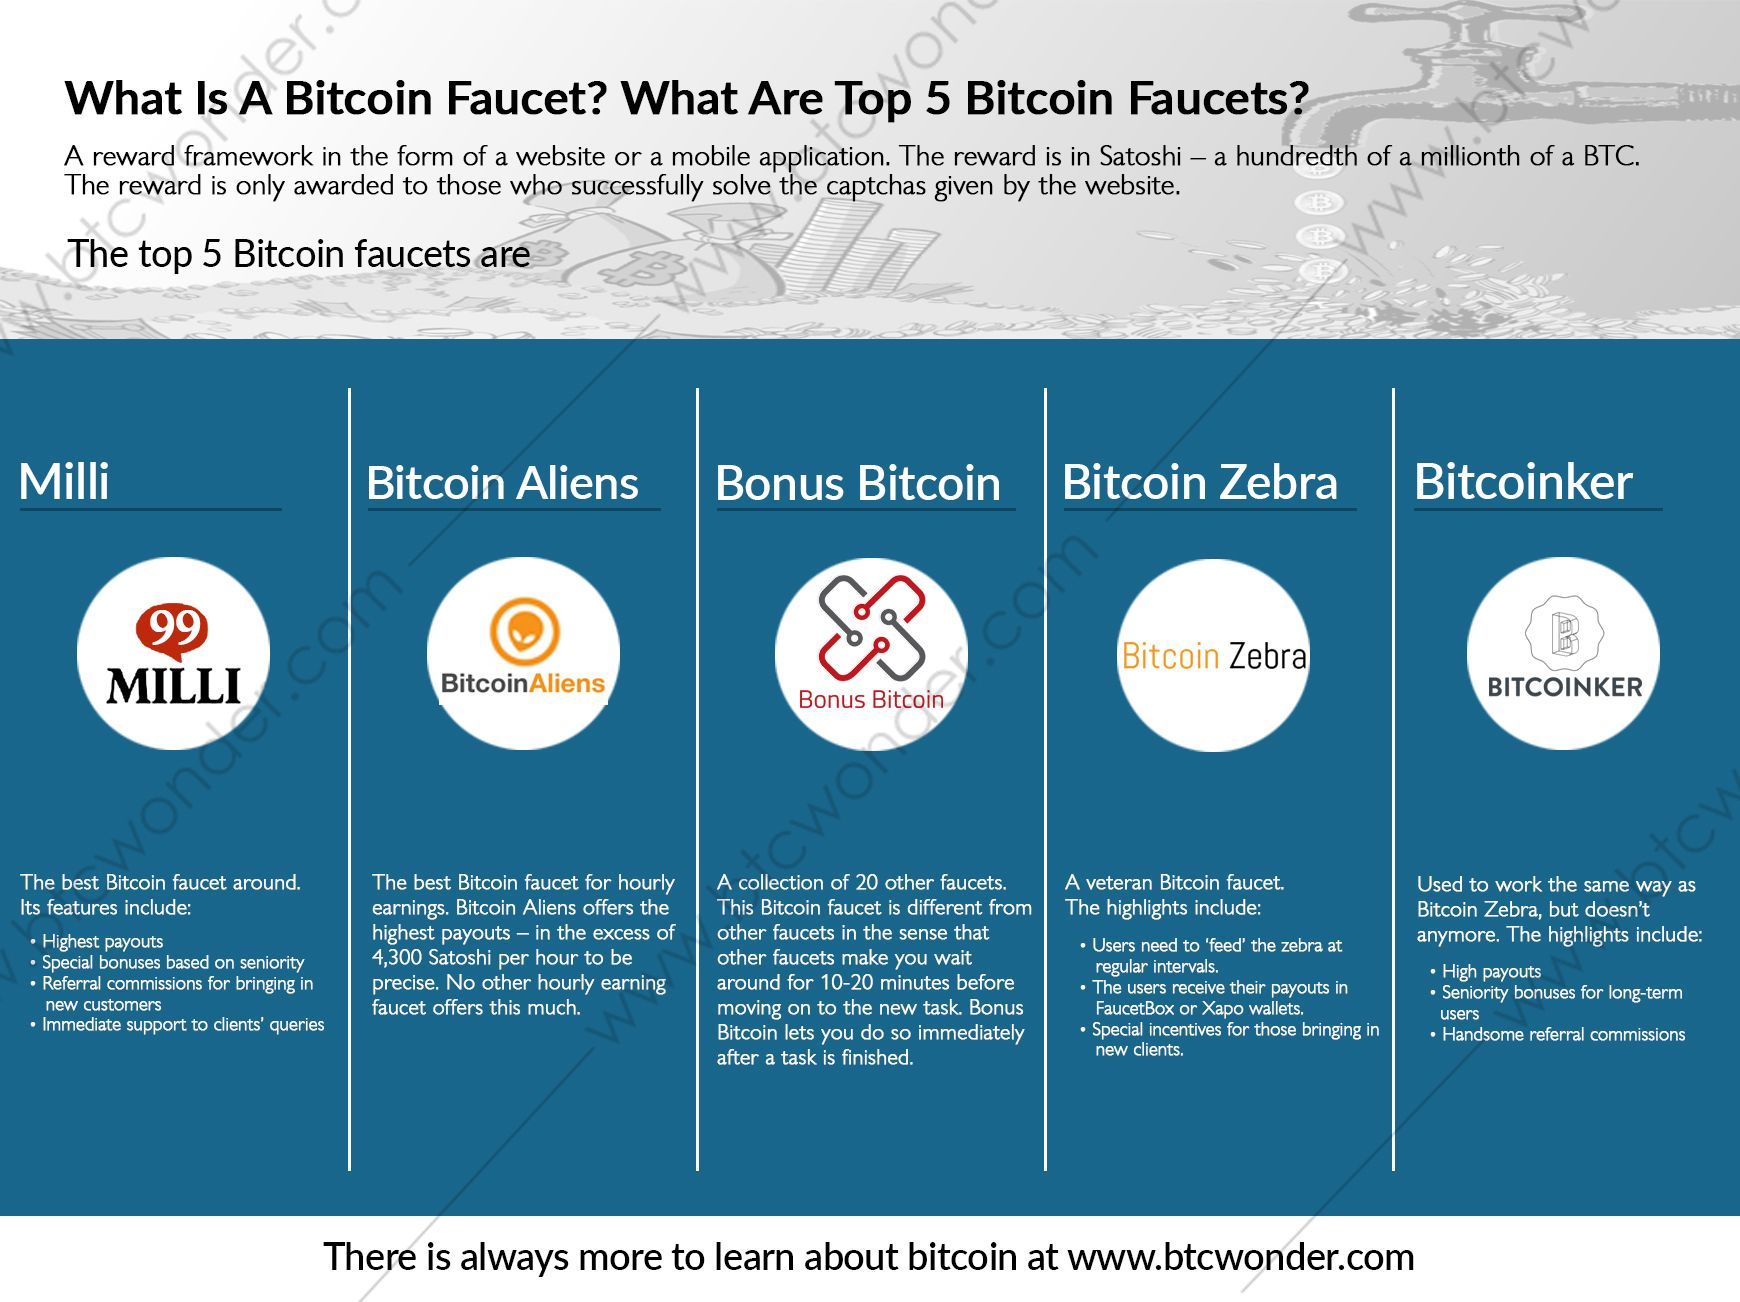 What Is A Bitcoin Faucet? What Are Top 5 Bitcoin Faucets? - BTC ...